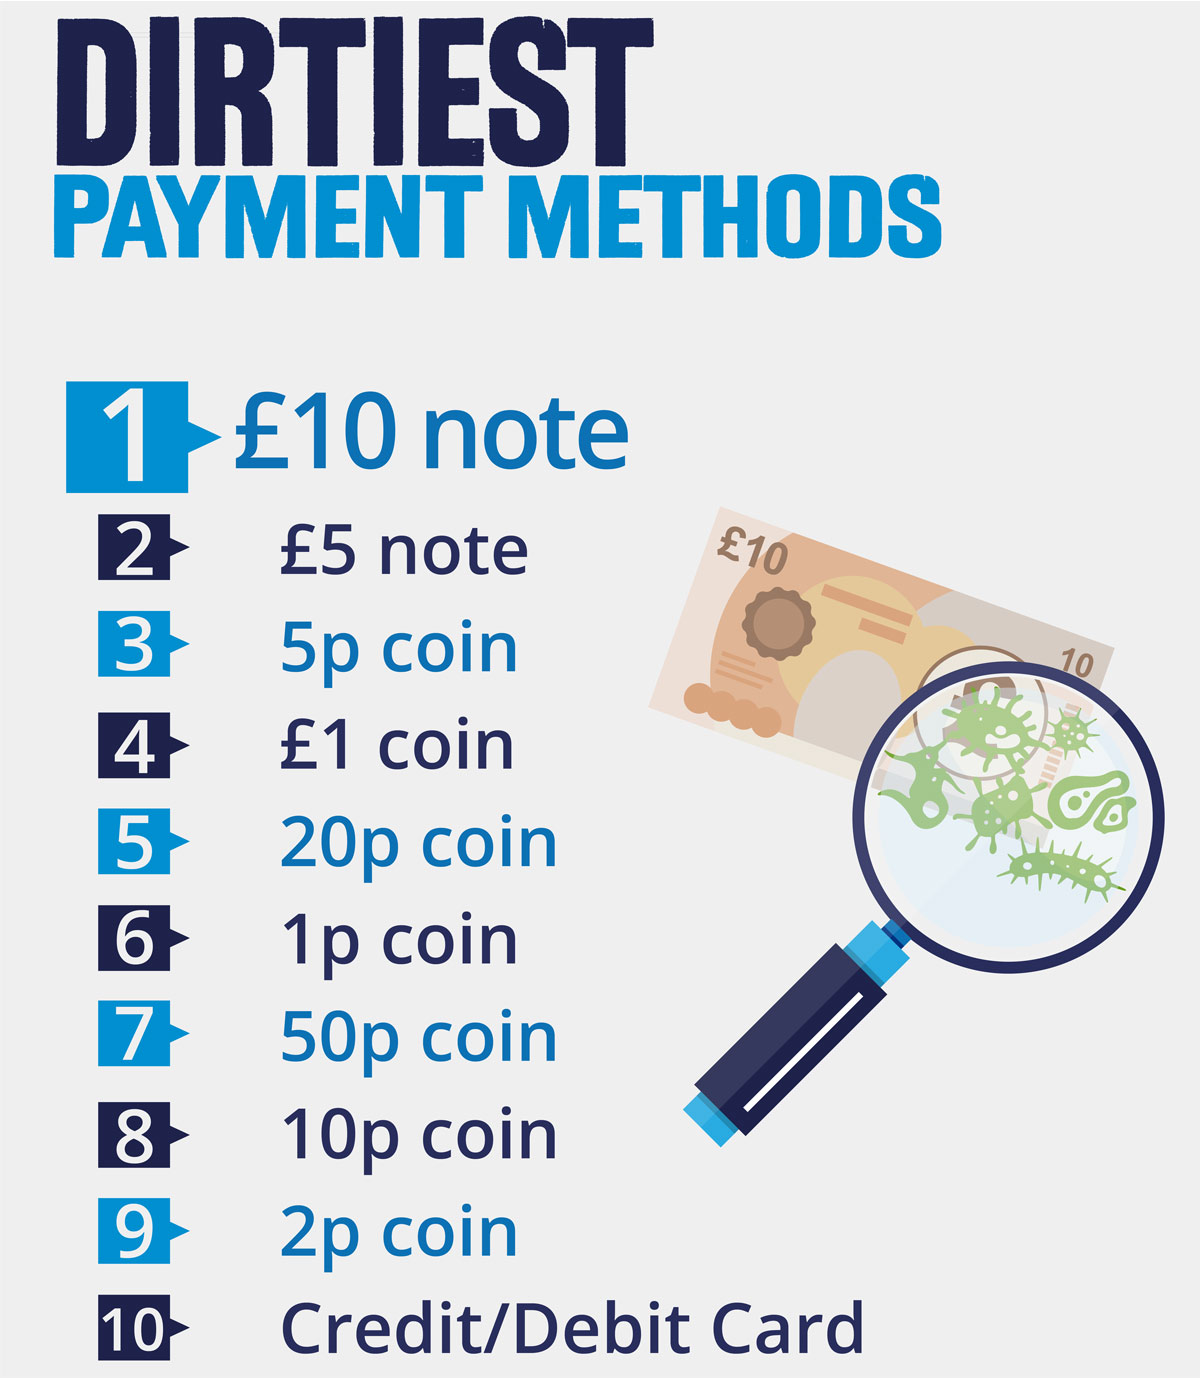 dirtiest payment methods